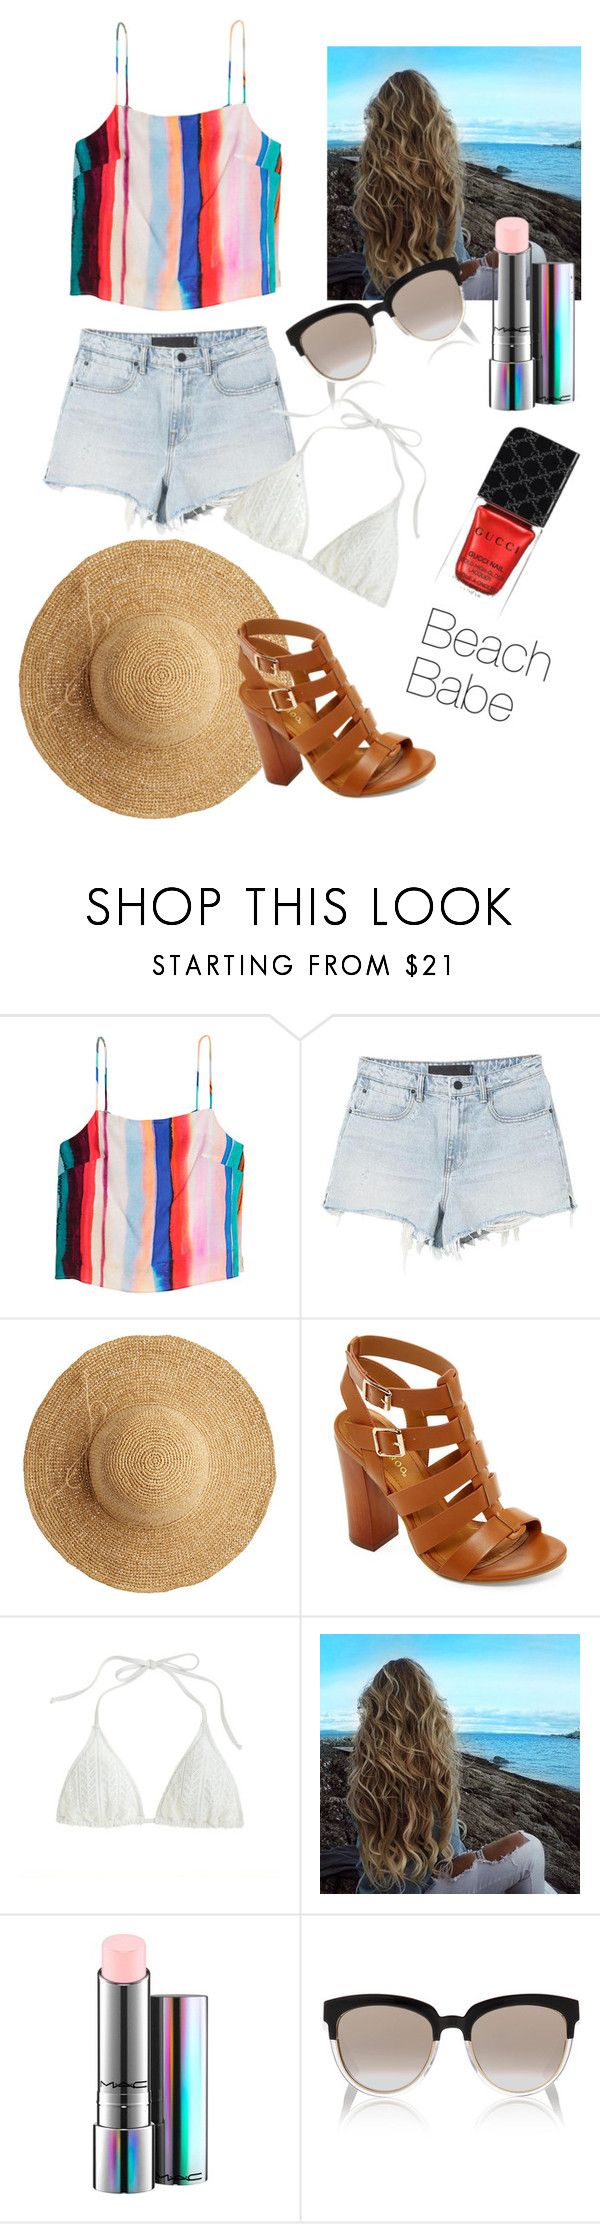 """""""May"""" by judehassan on Polyvore featuring Alexander Wang, Flora Bella, Bamboo, J.Crew, MAC Cosmetics, Christian Dior and Gucci"""